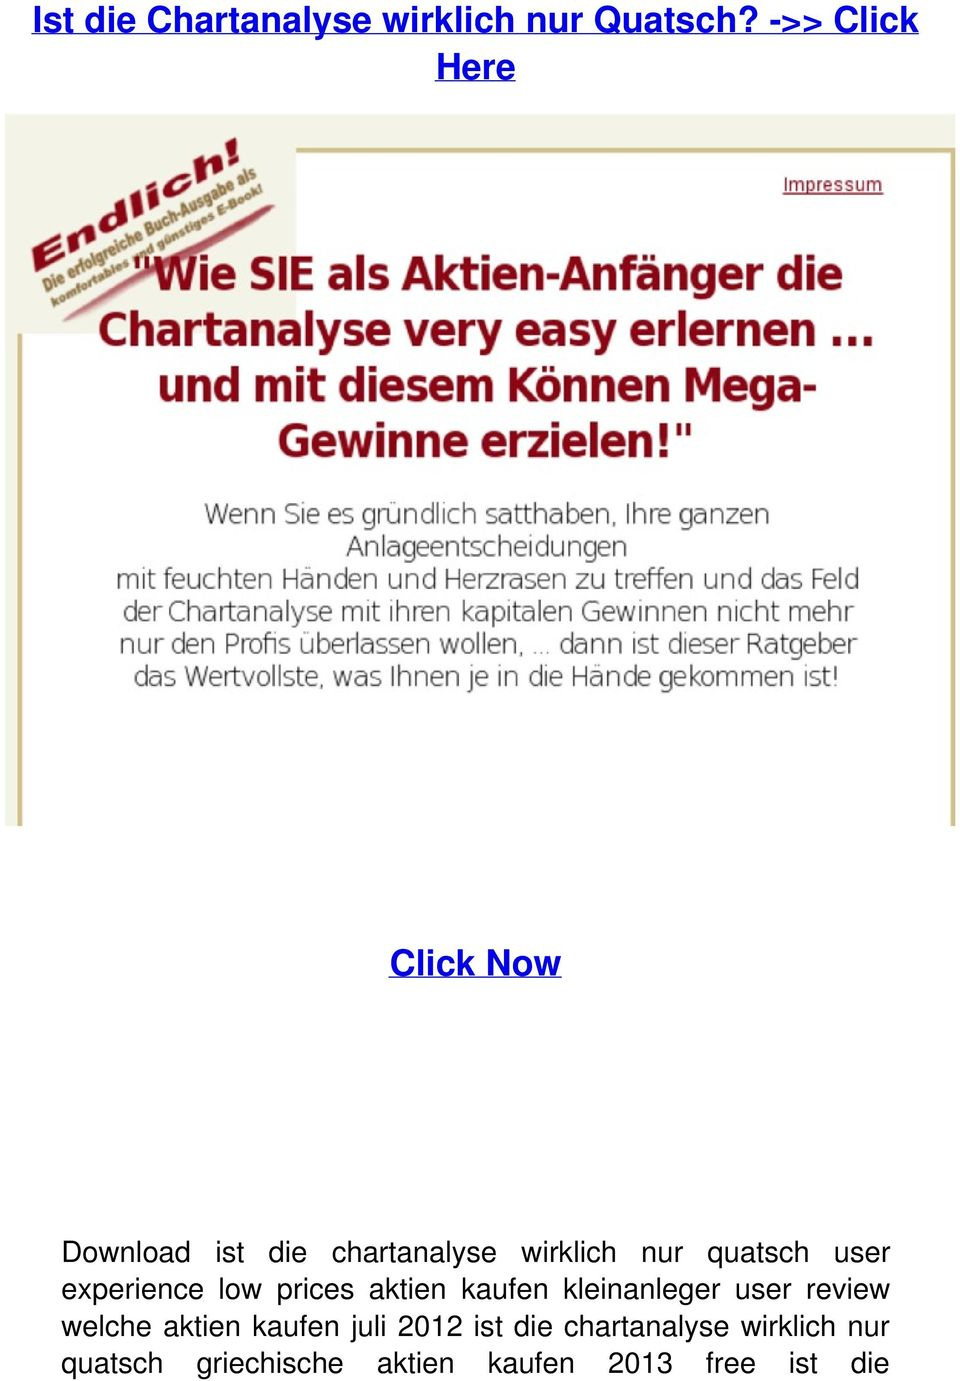 user experience low prices aktien kaufen kleinanleger user review welche